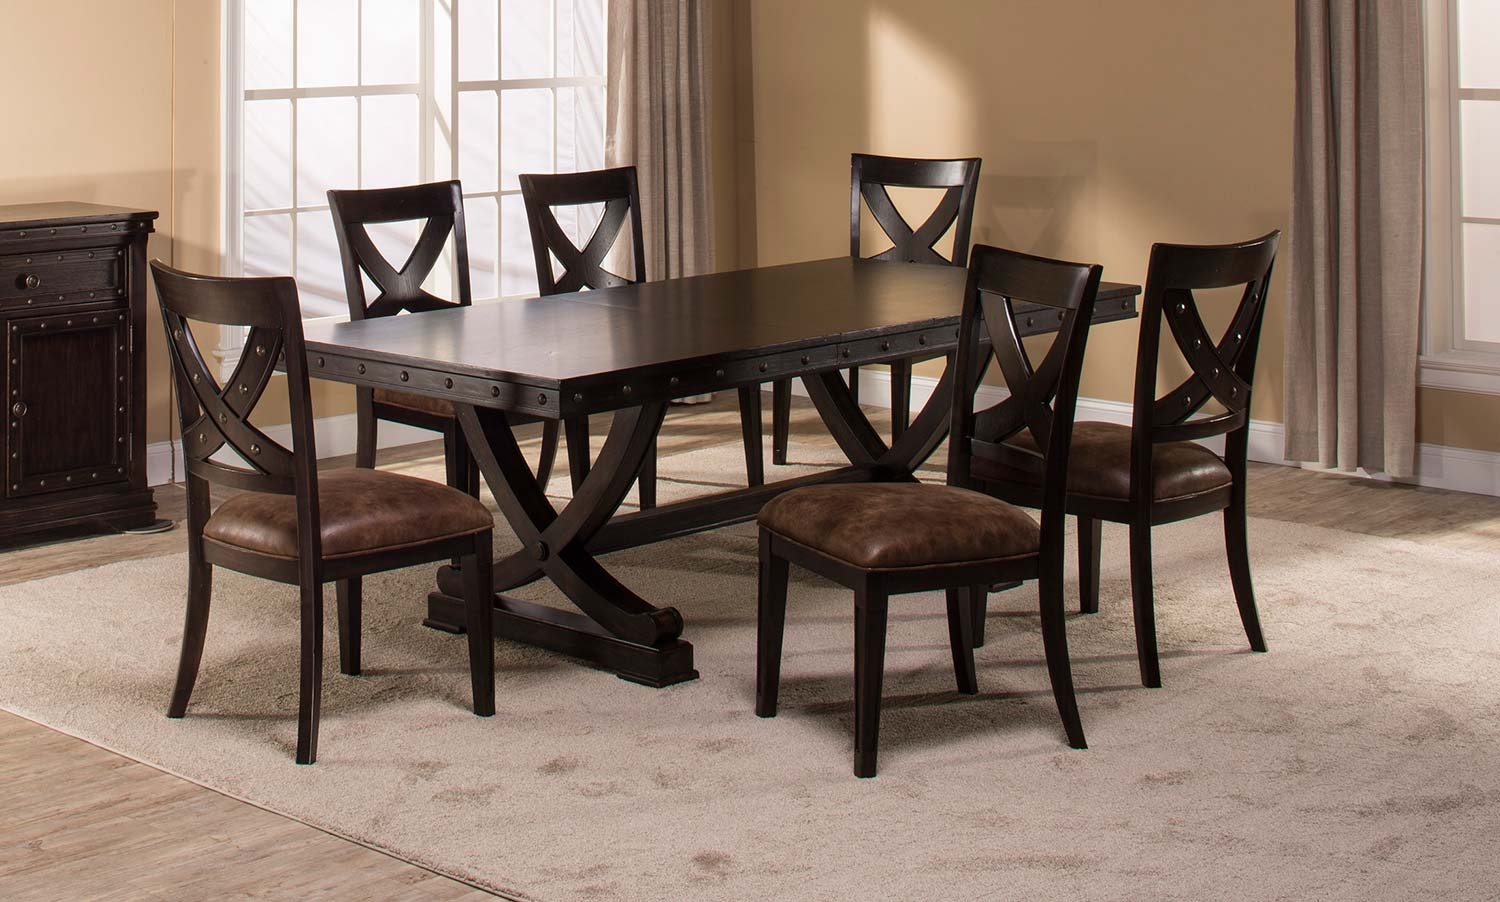 Hillsdale Santa Fe 7-Piece Trestle Dining Set - Distressed Espresso